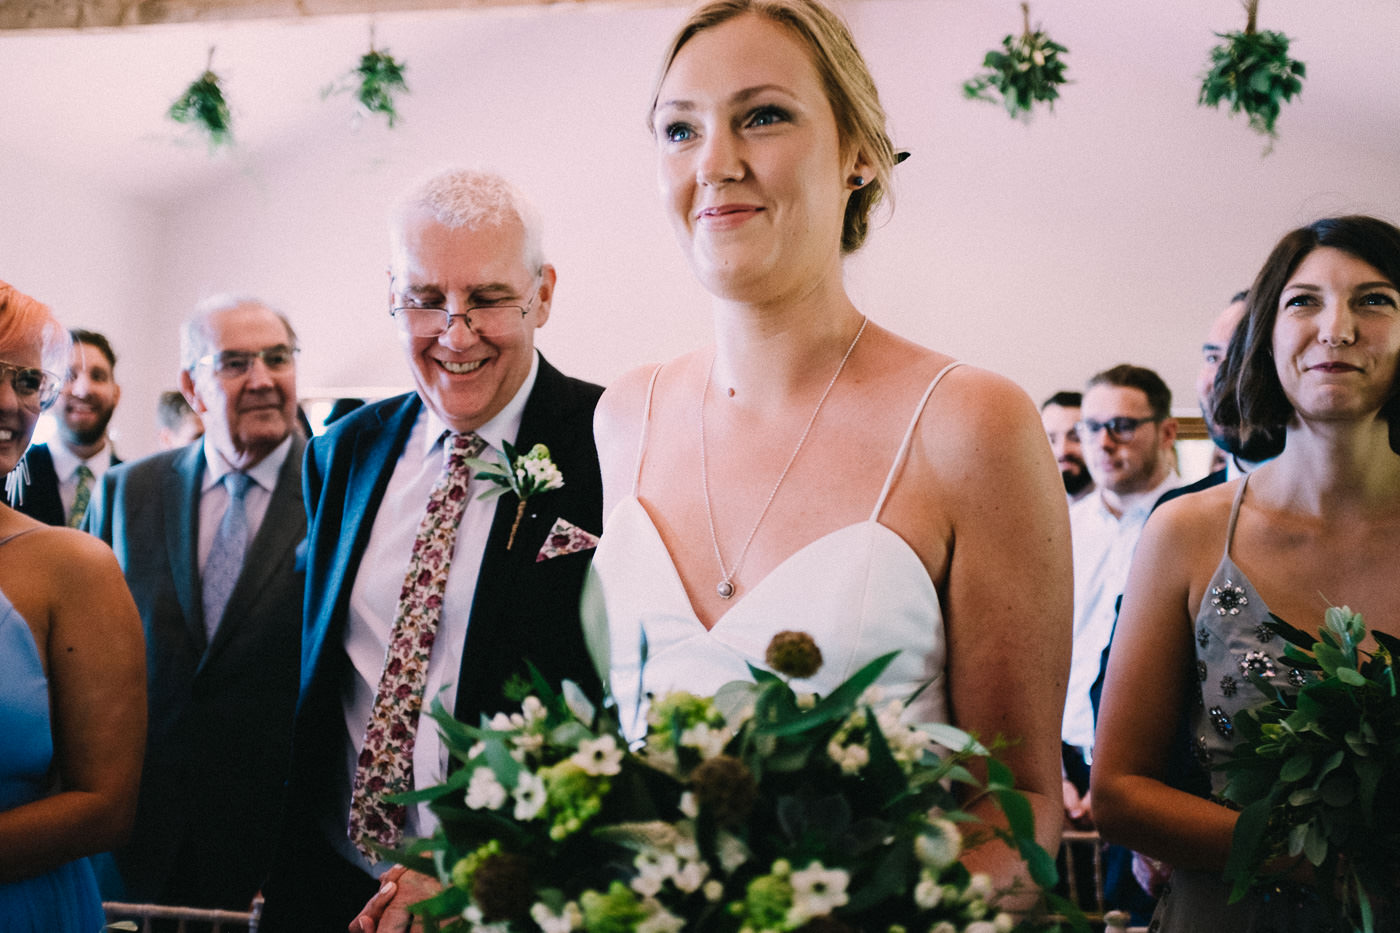 COWBRIDGE GLYNDWR VINEYARD WEDDING PHOTOGRAPHY CARDIFF SOUTH WALES 023